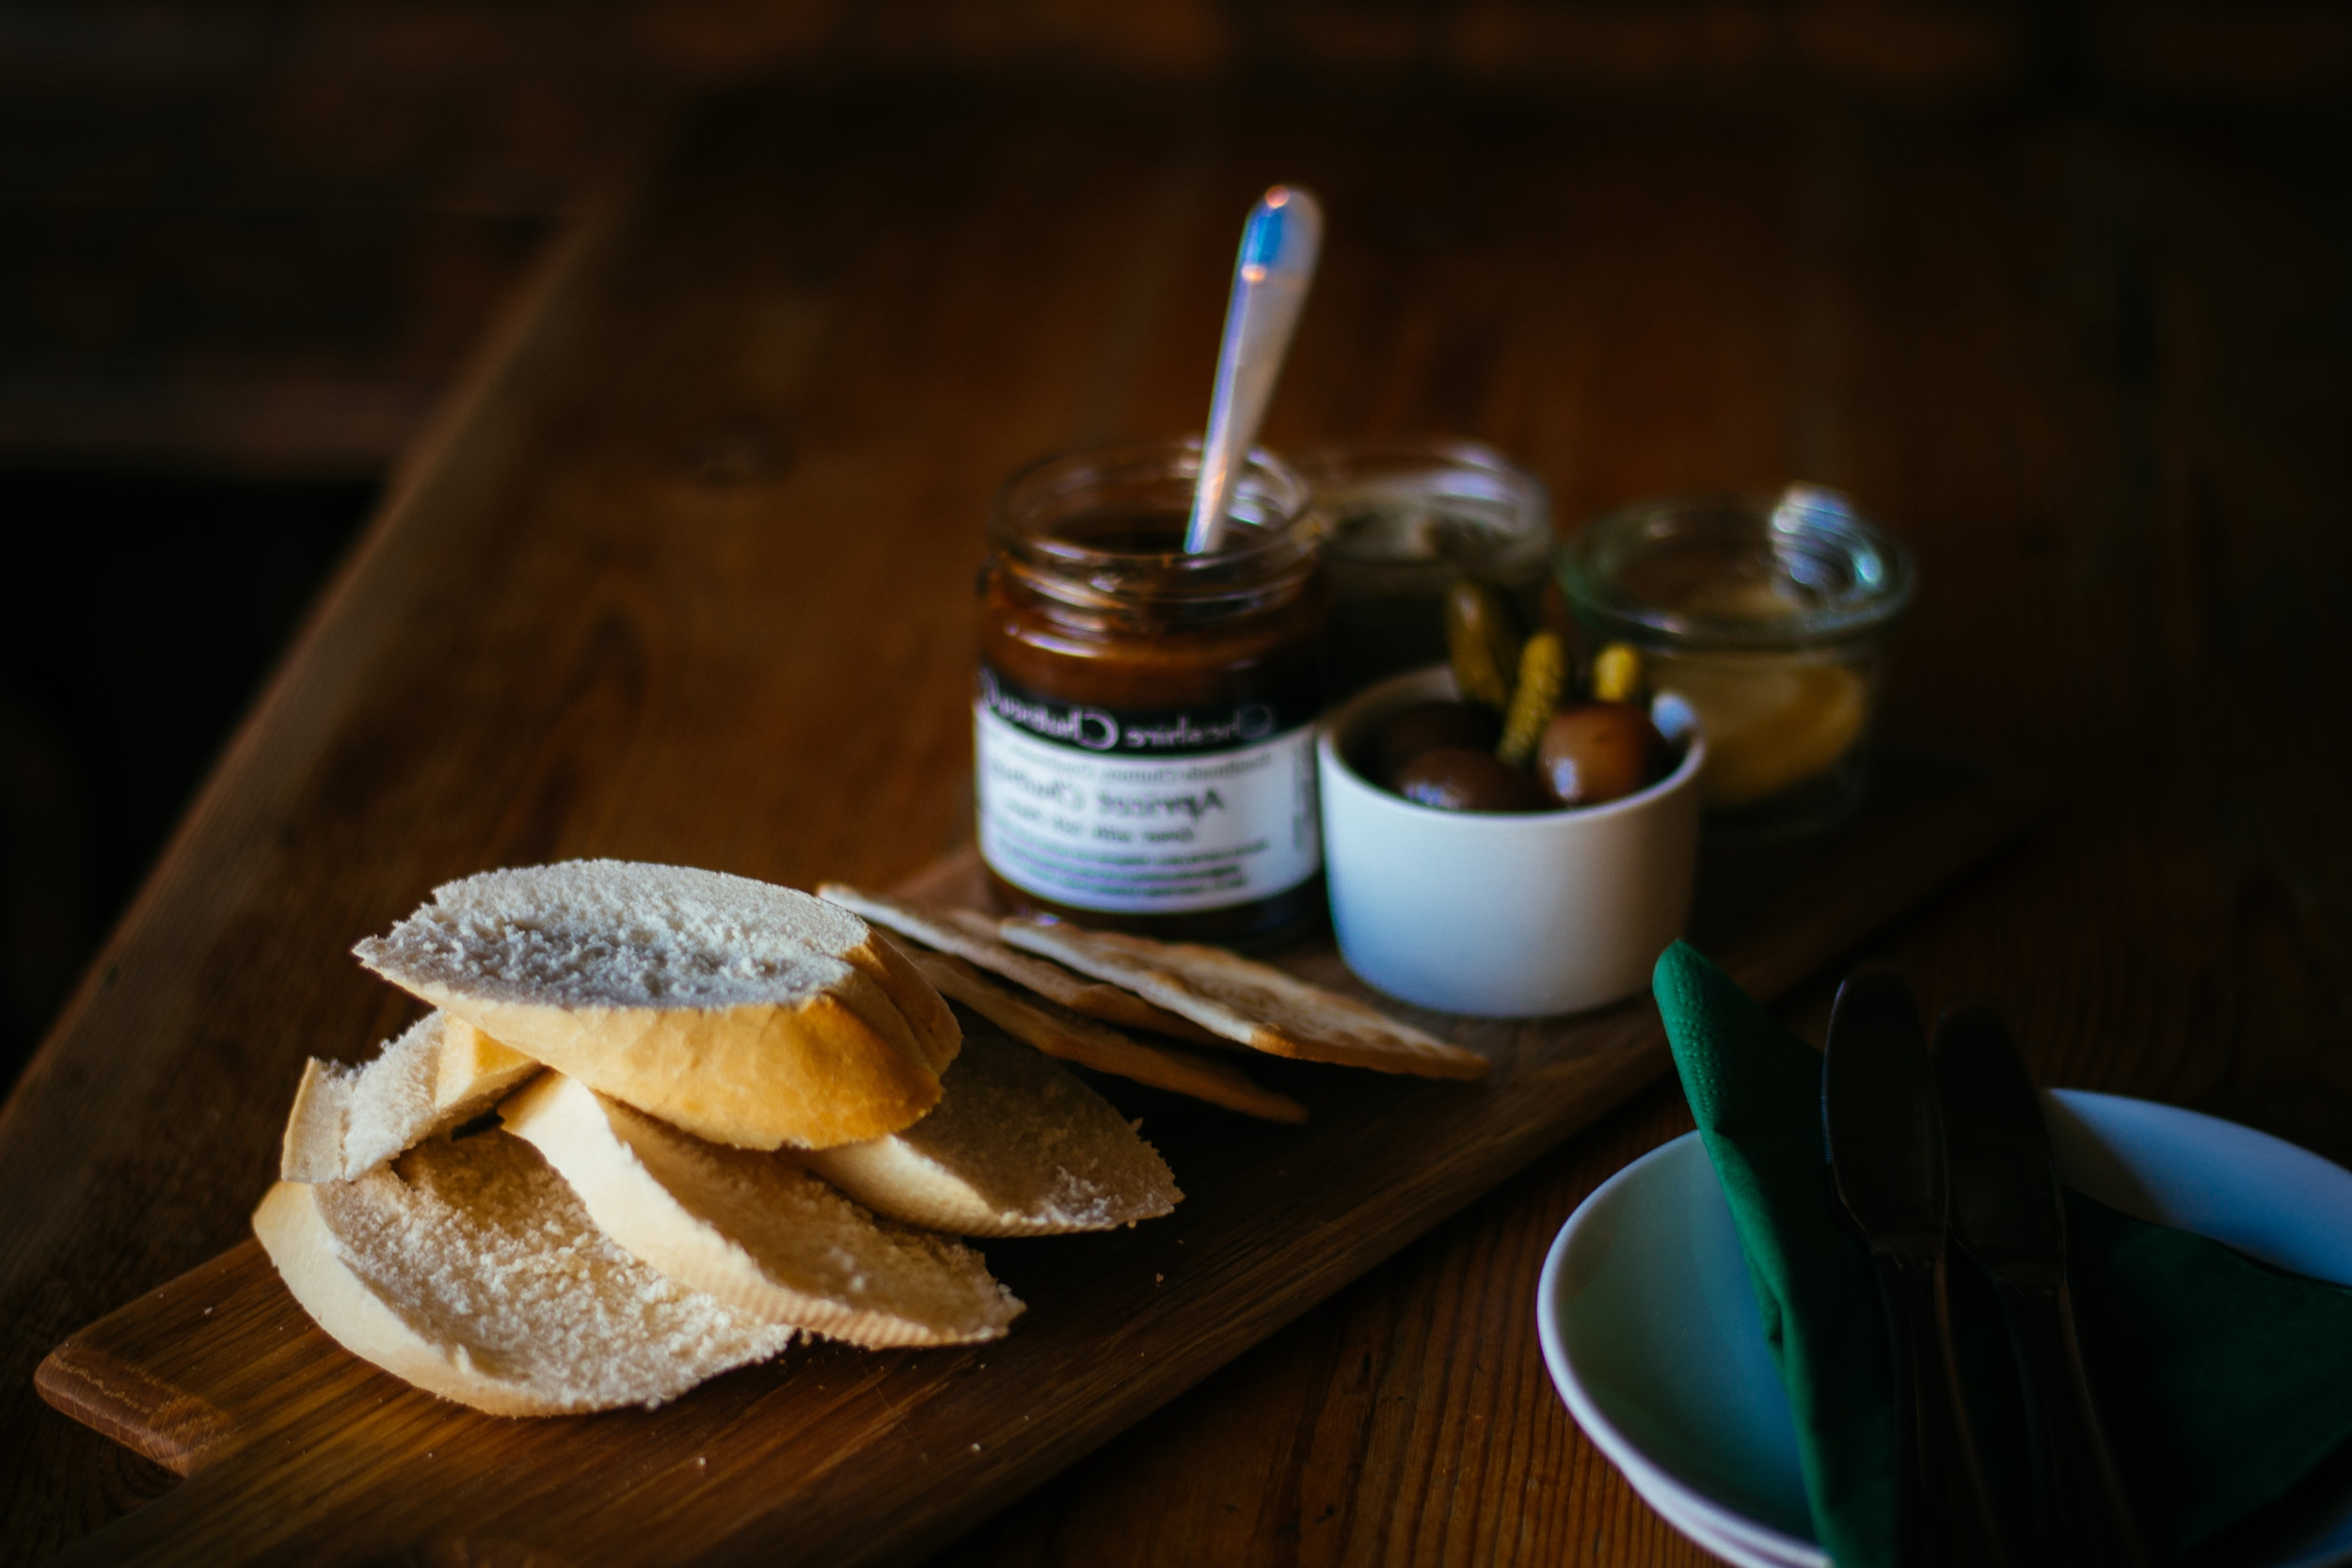 Paté - A choice of one of our Patchwork Pates, all served with bread, crackers, cornichons, balsamic pickled onions, & Cheshire Chutney Company chutneys.- Chicken liver with brandy & herb £7- Duck with apricot & apricot brandy £7- Welsh Dragon - Venison & chilli £7